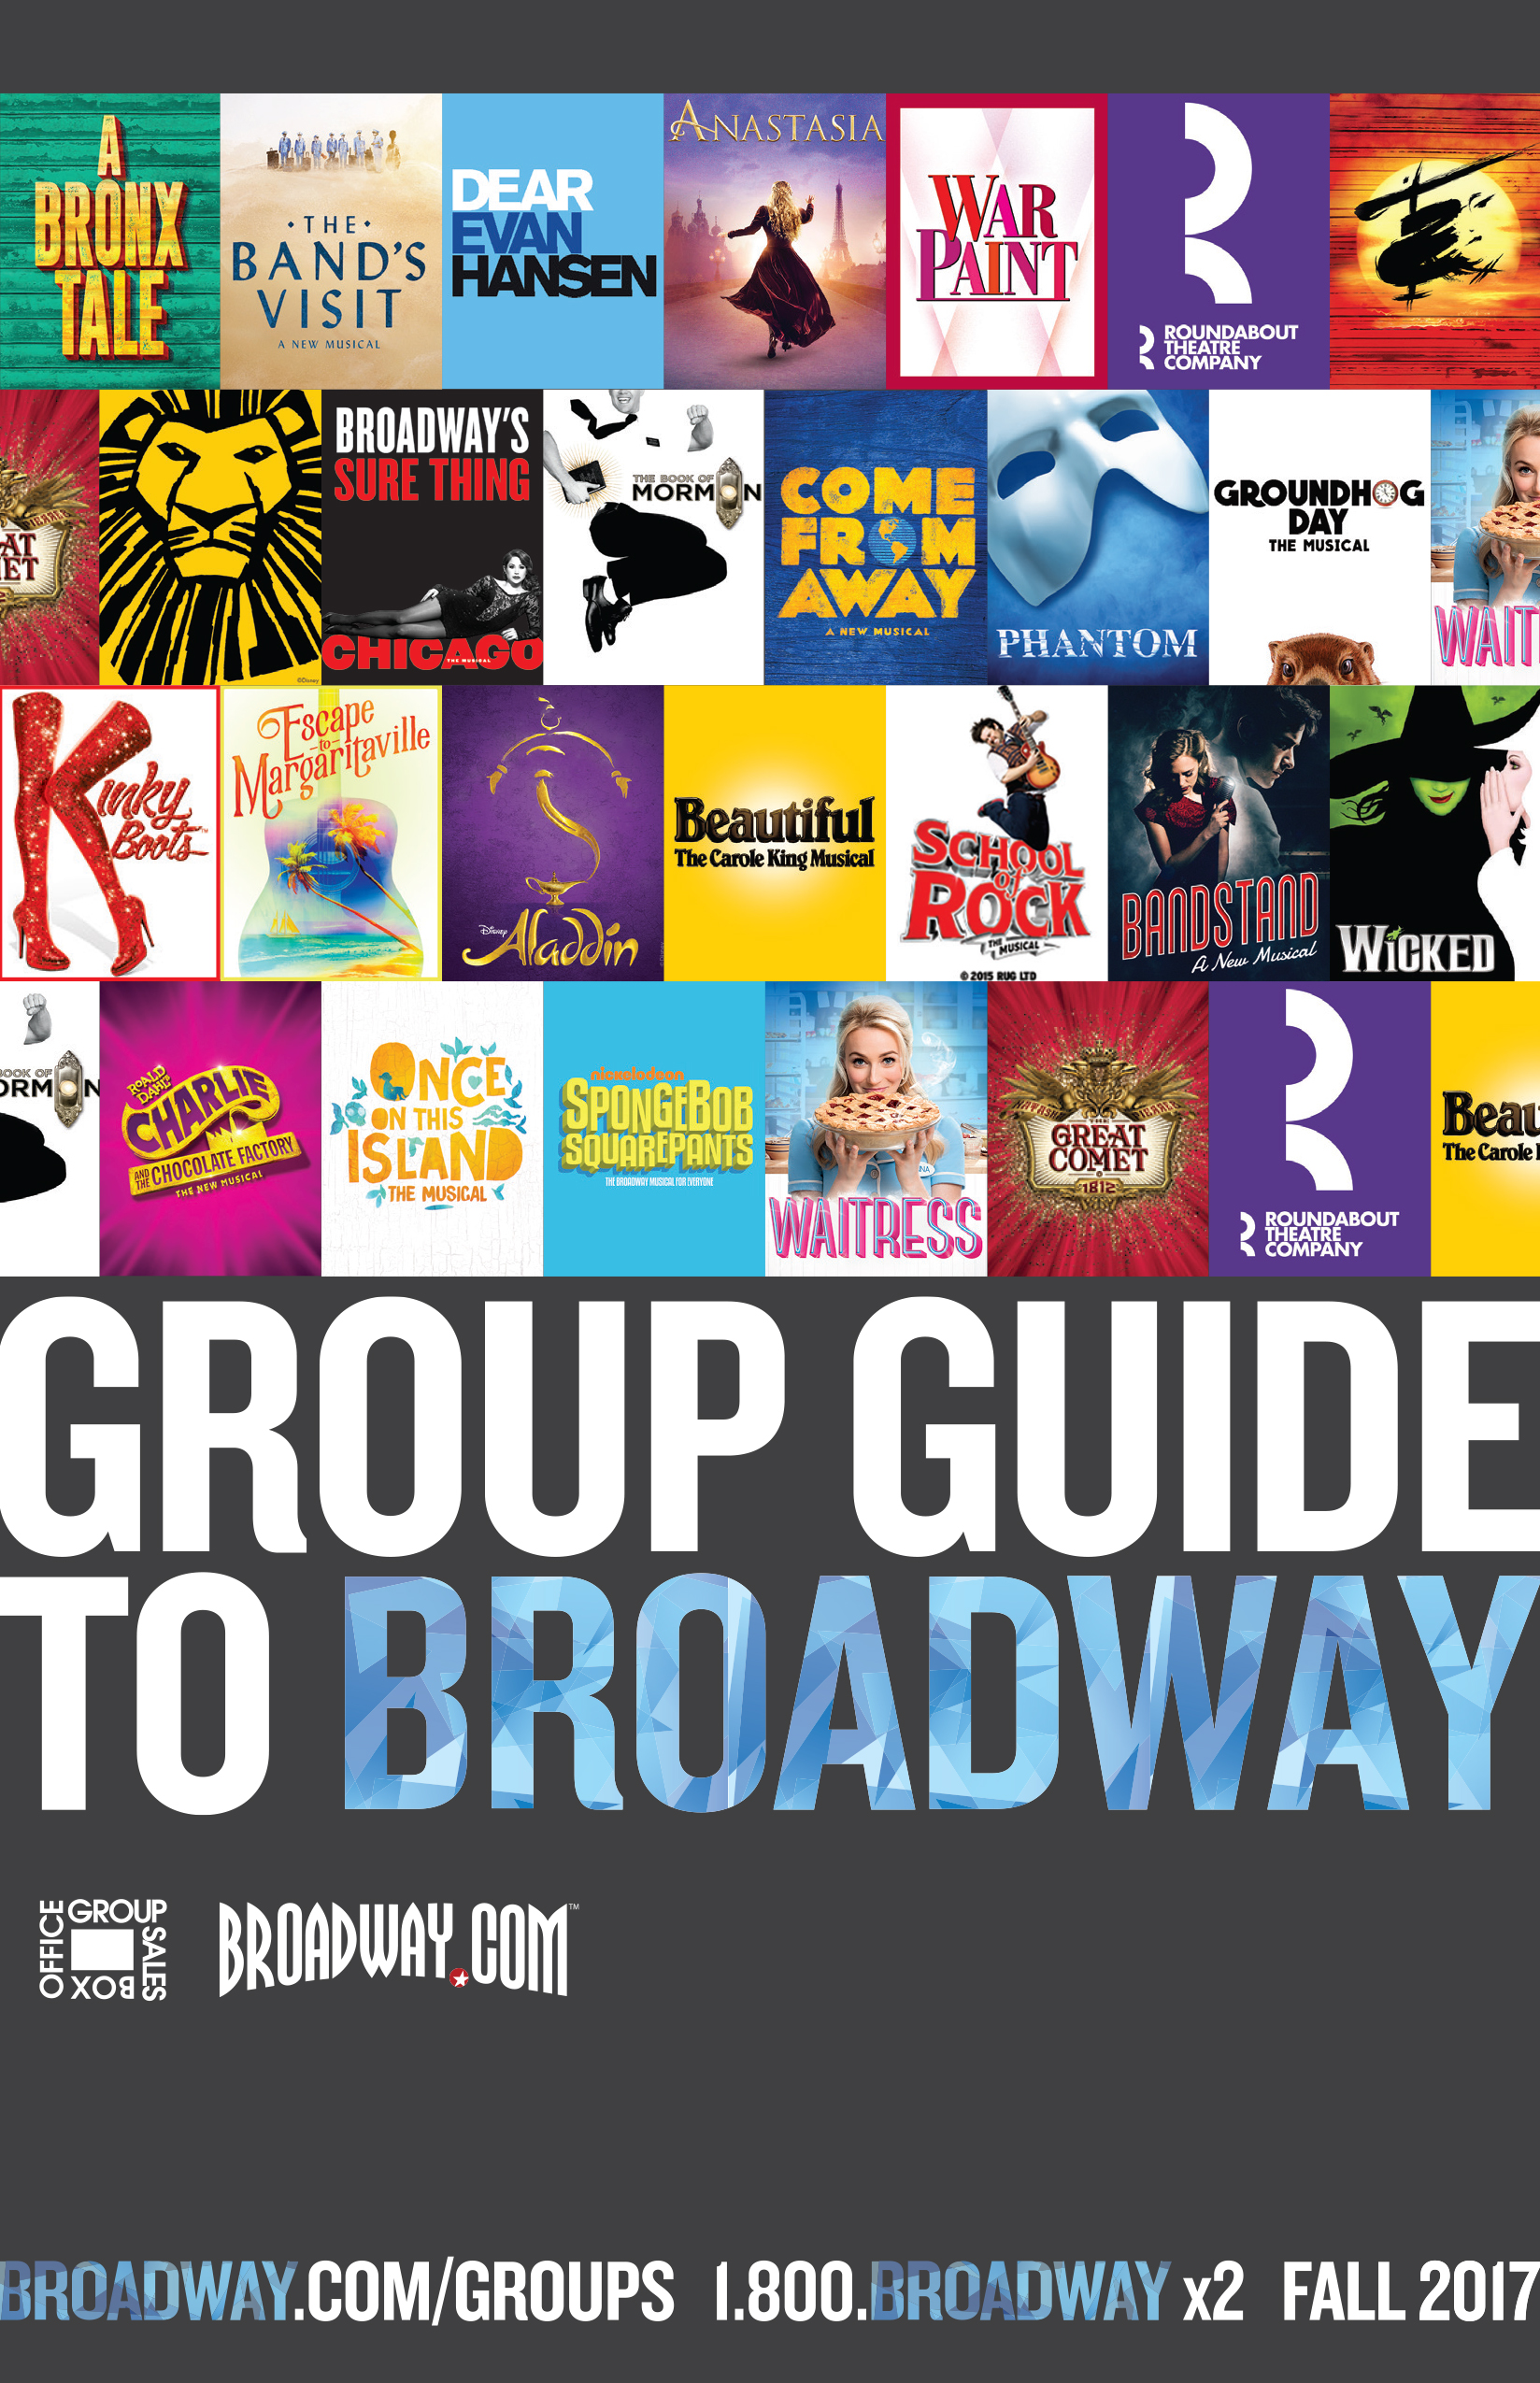 Fall 2017 Group Guide to Broadway